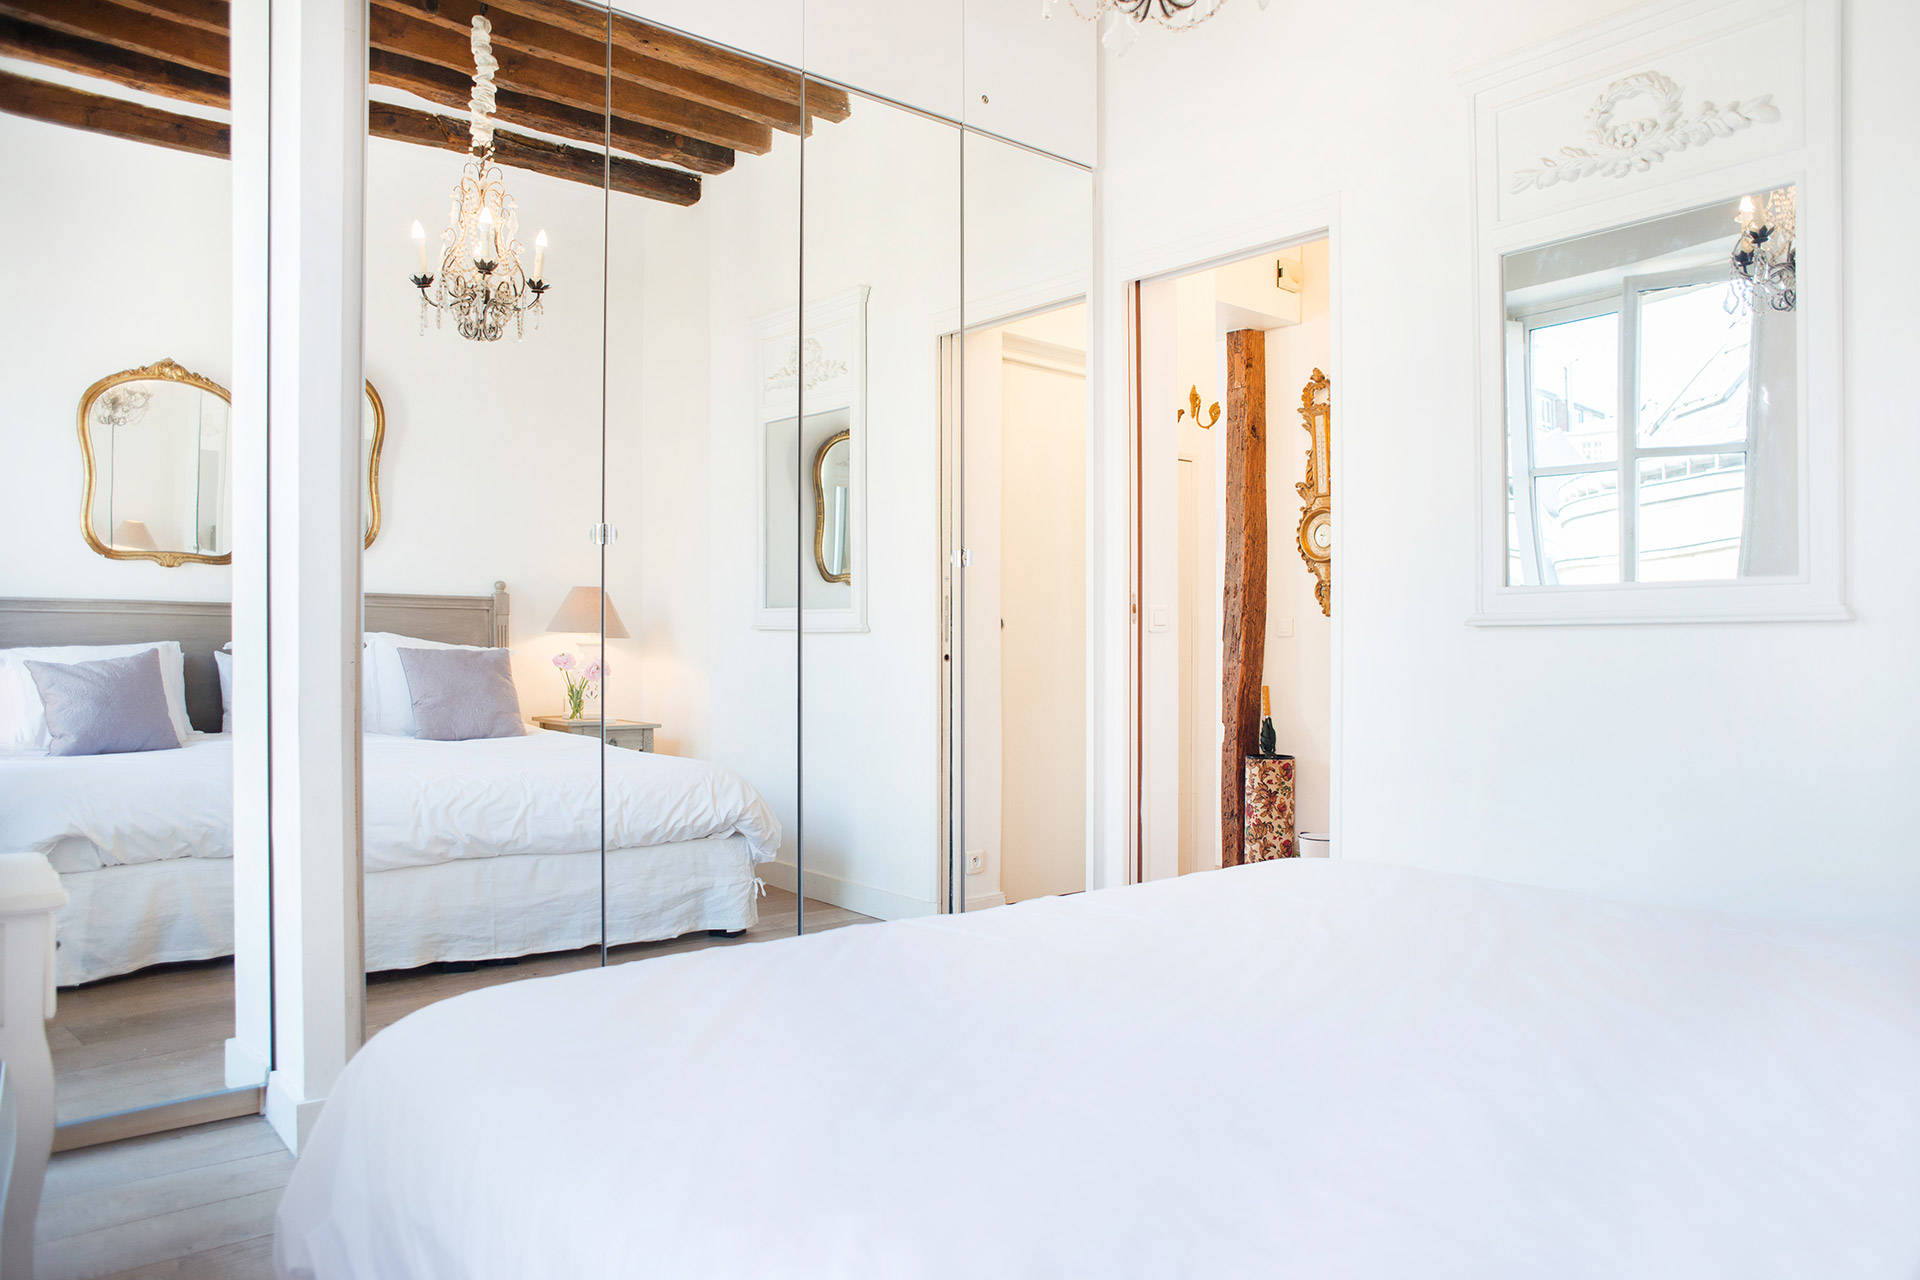 Bedroom in the Forez vacation rental offered by Paris Perfect